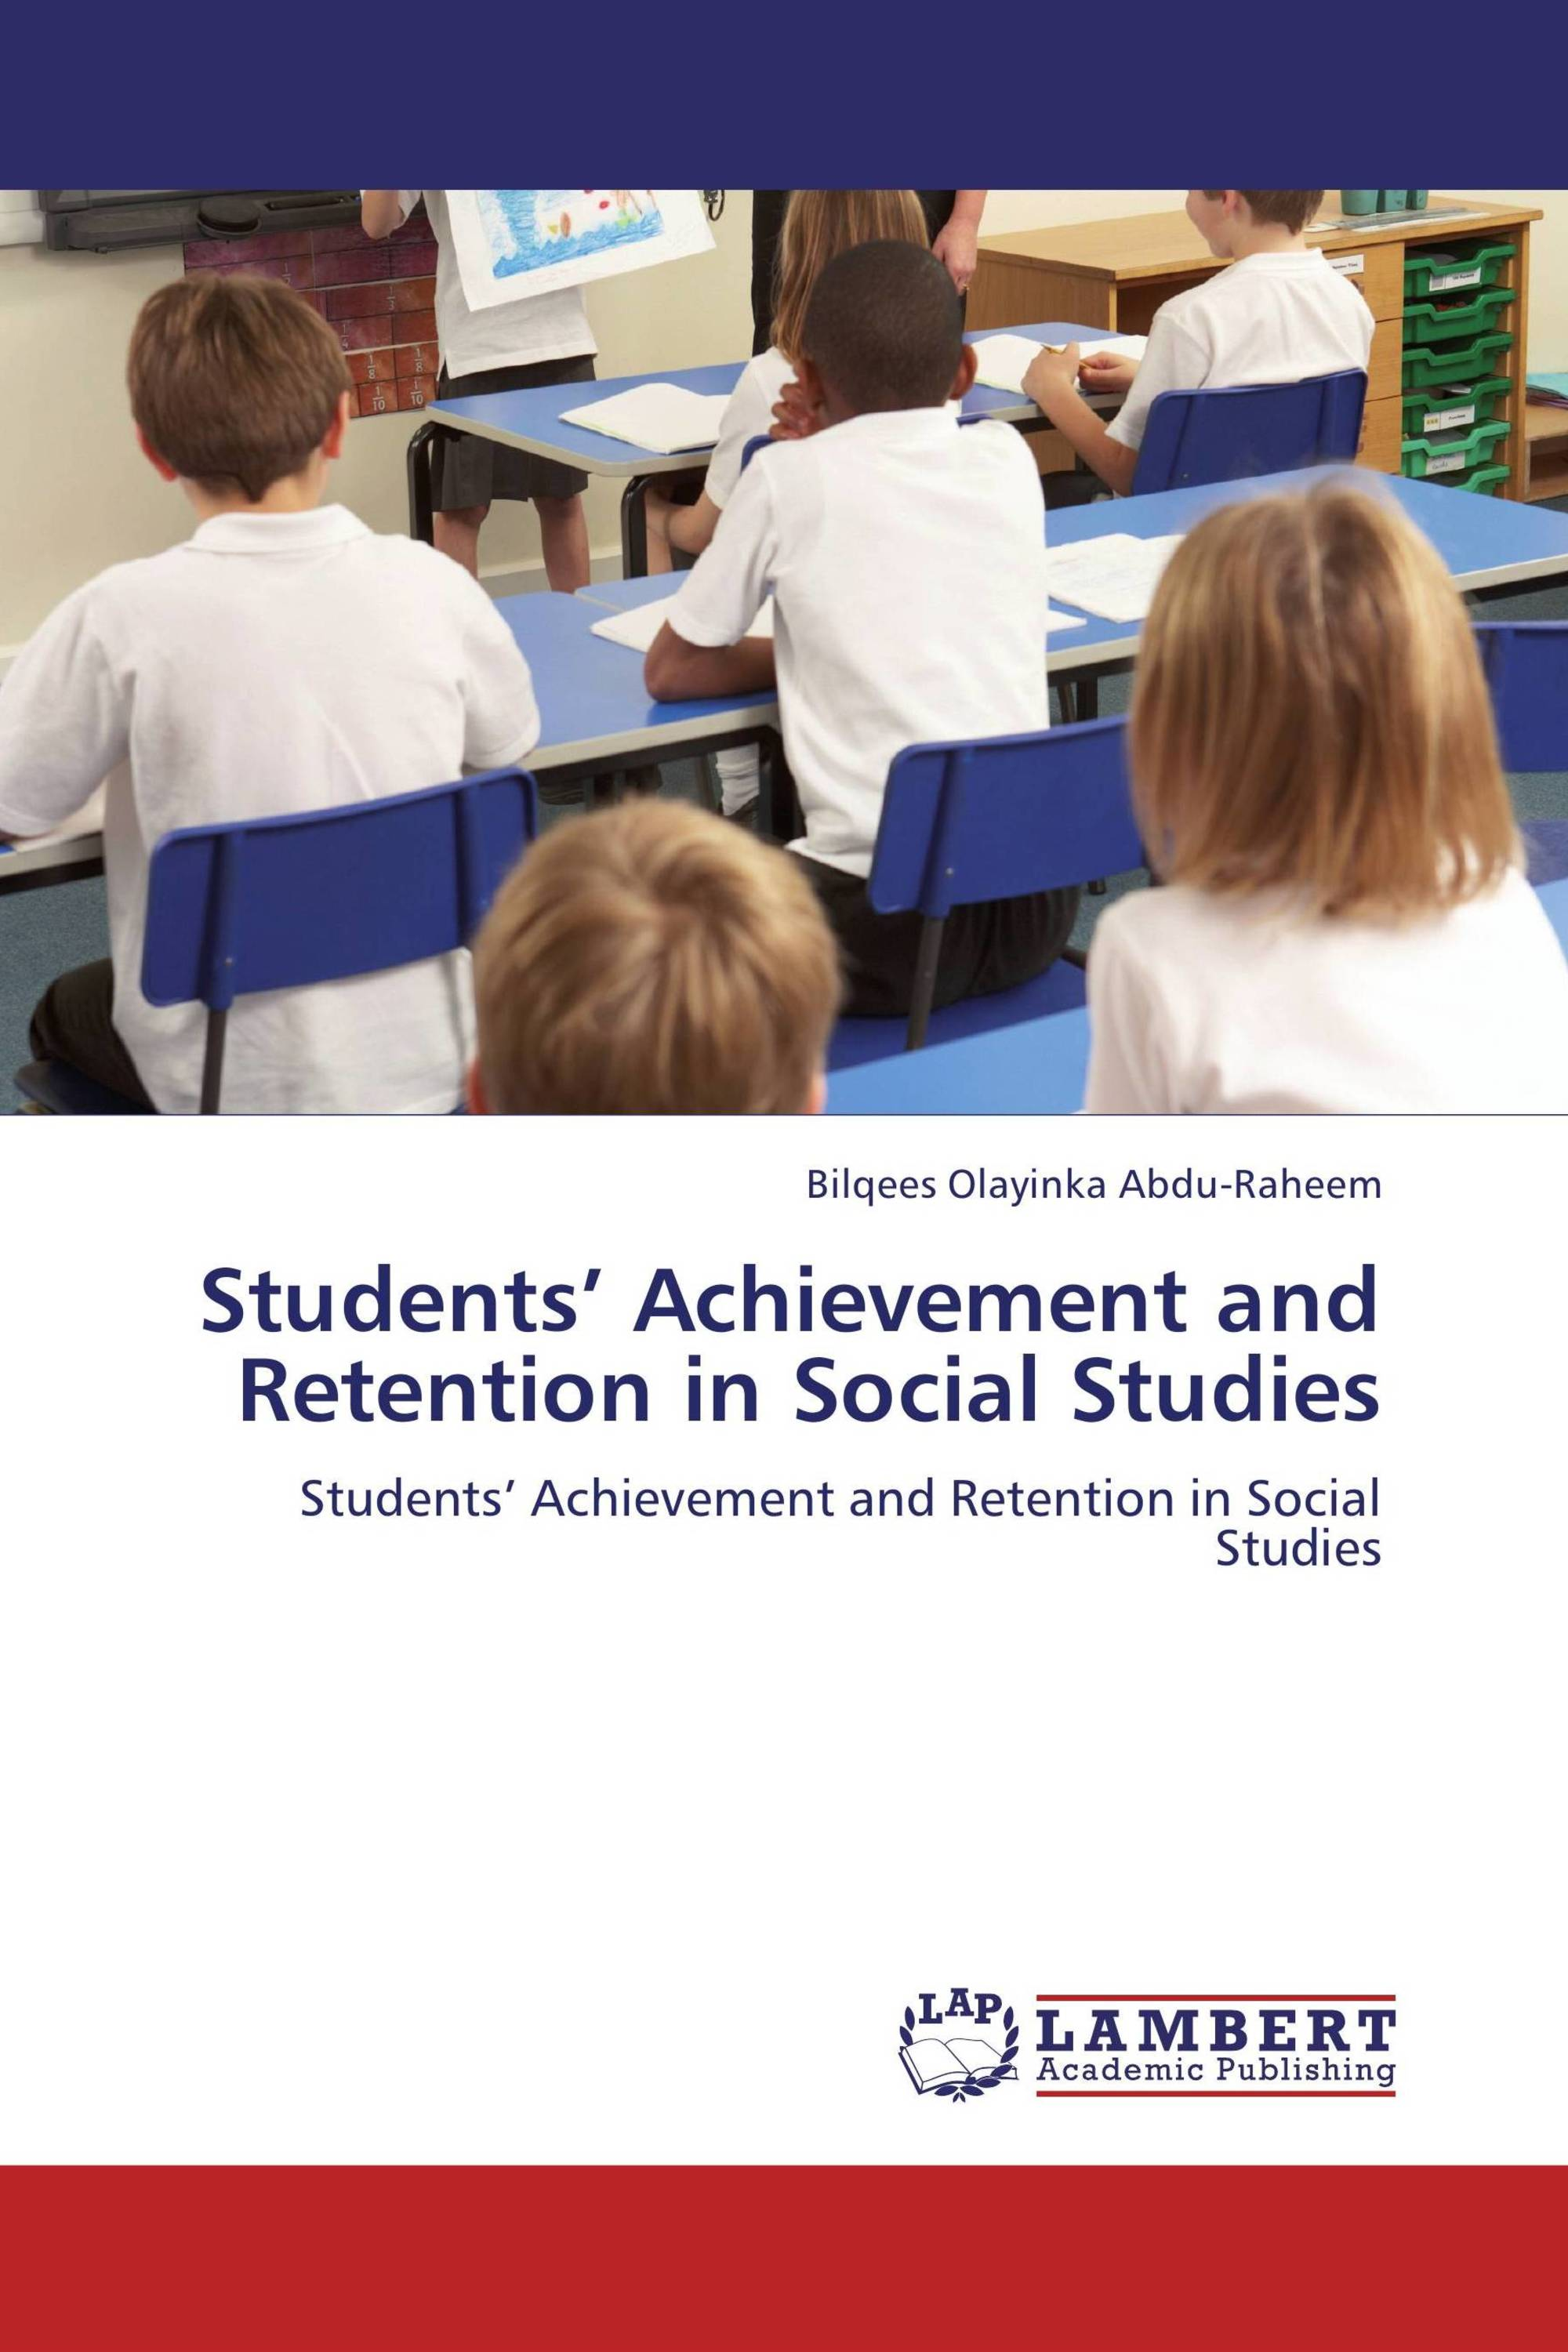 students and the effects of social